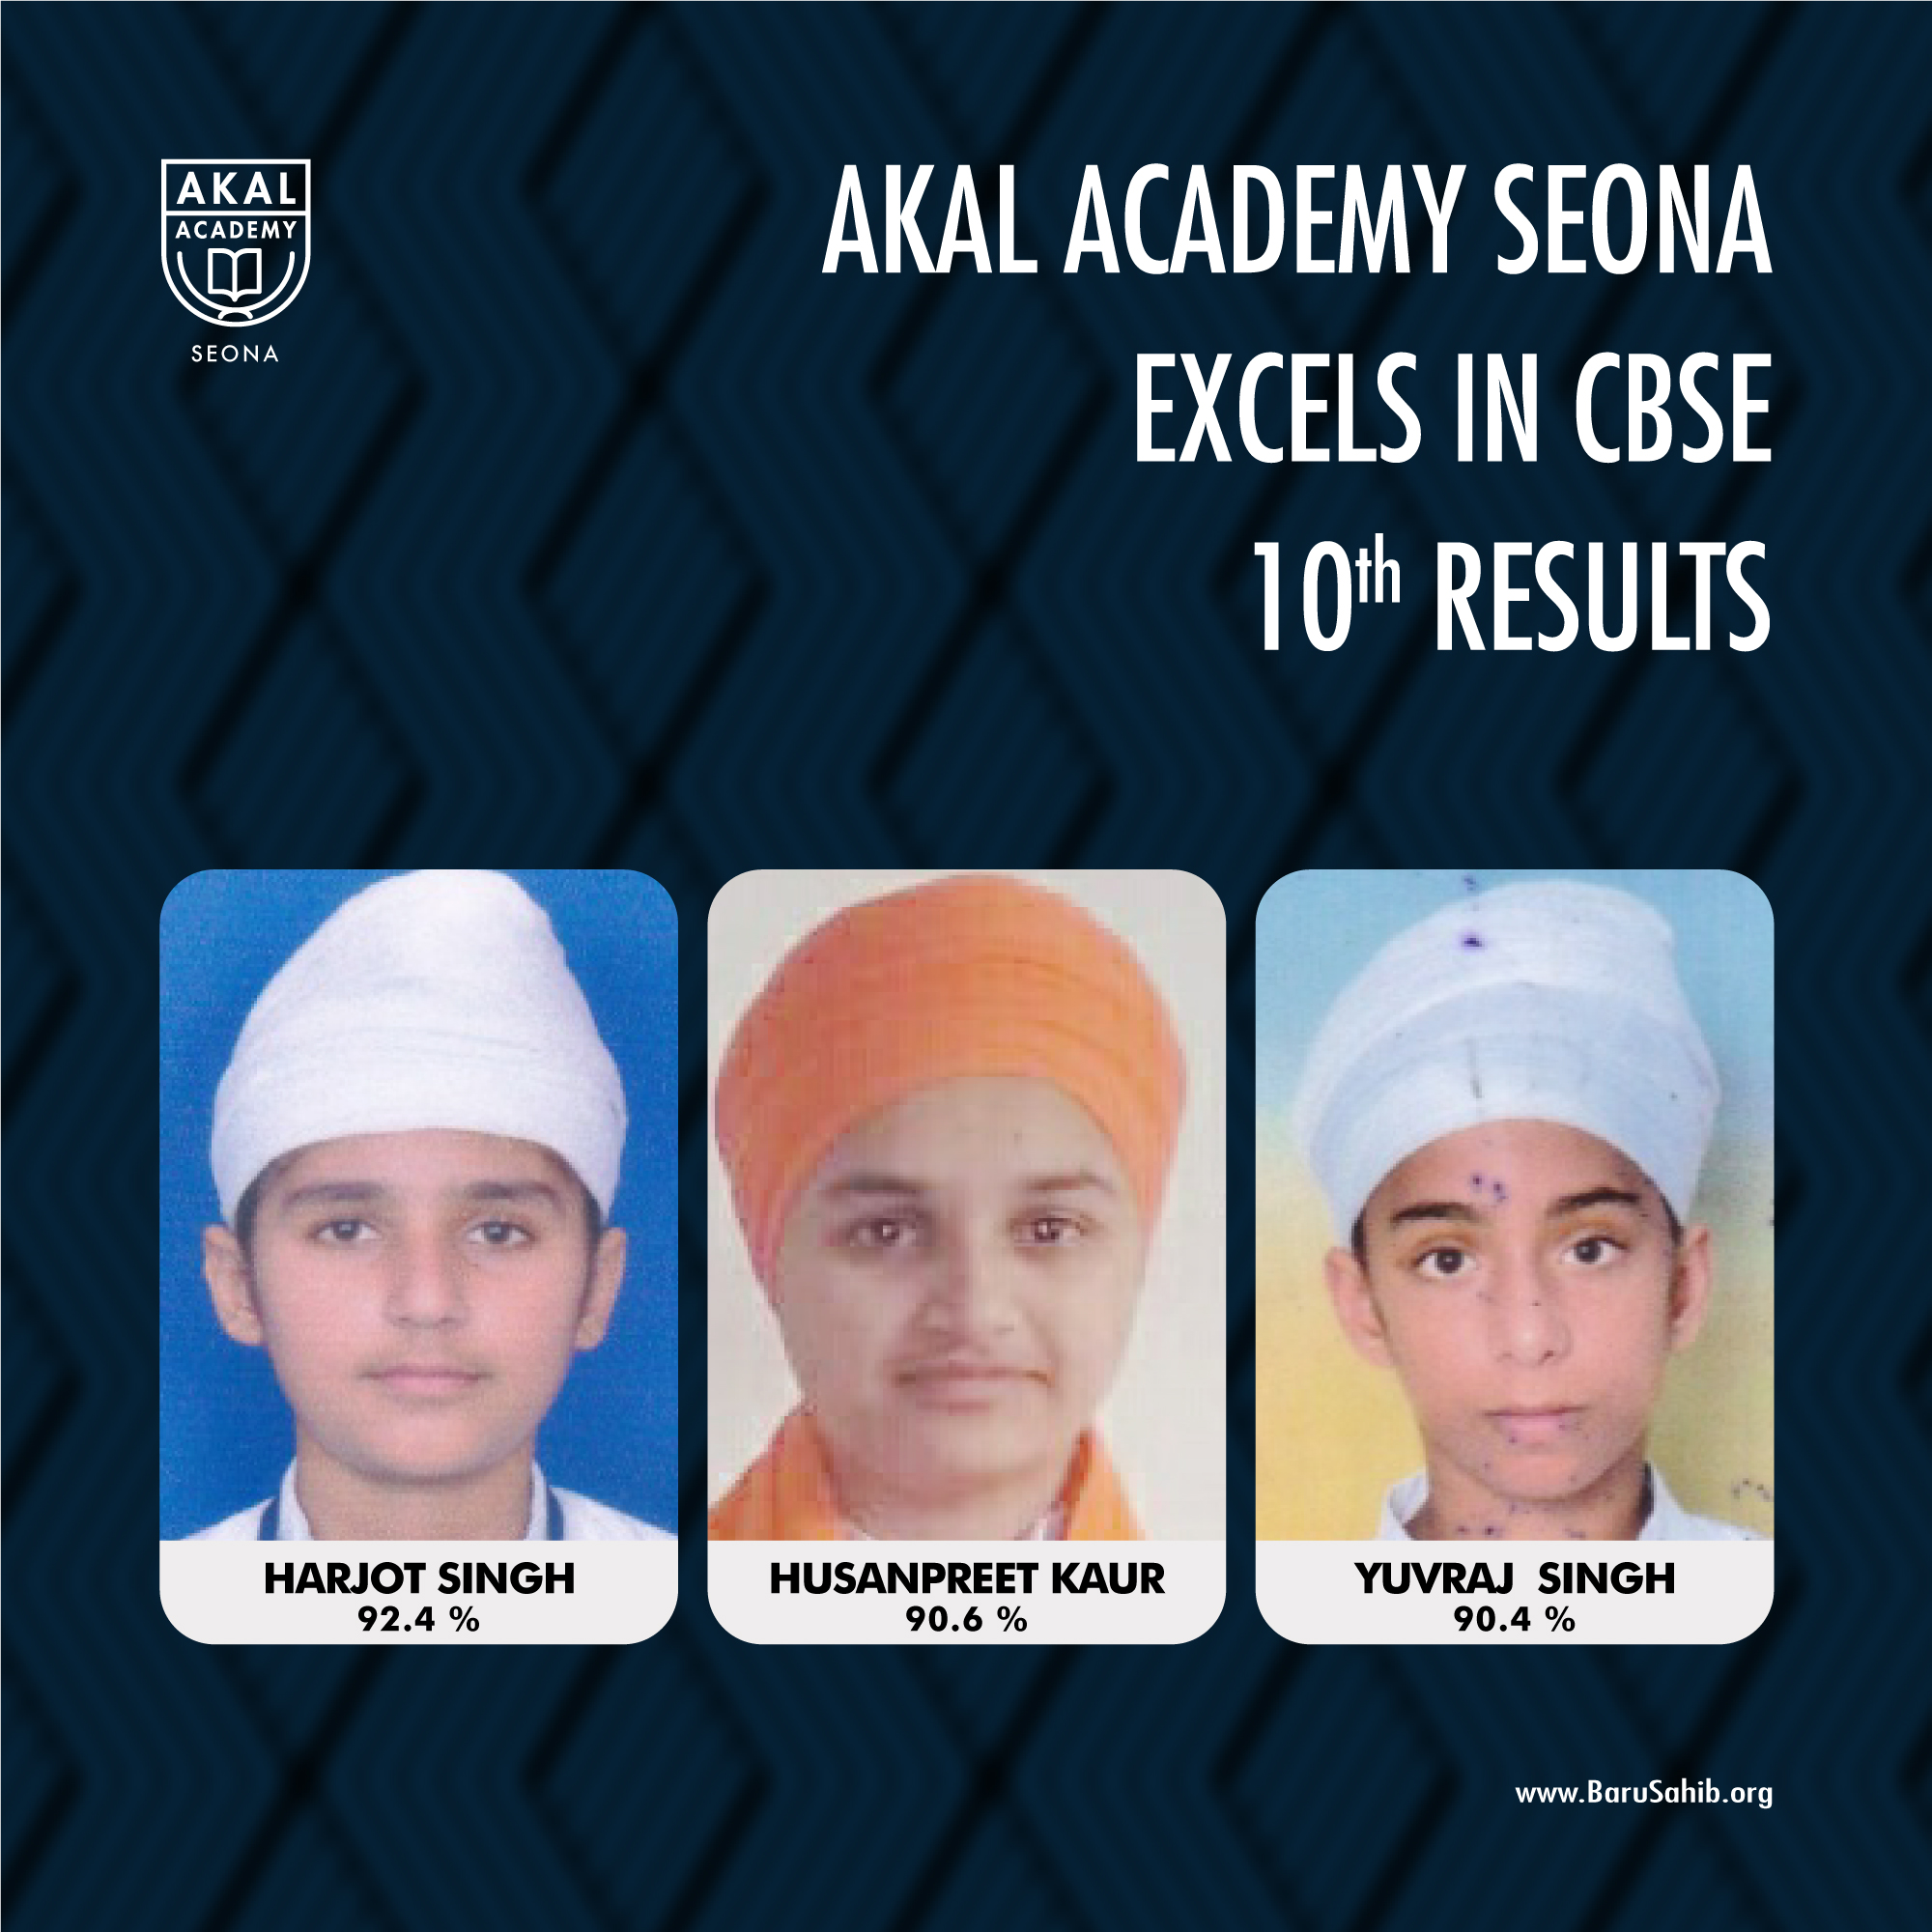 Akal Academy Seona Excels in CBSE 10th Results